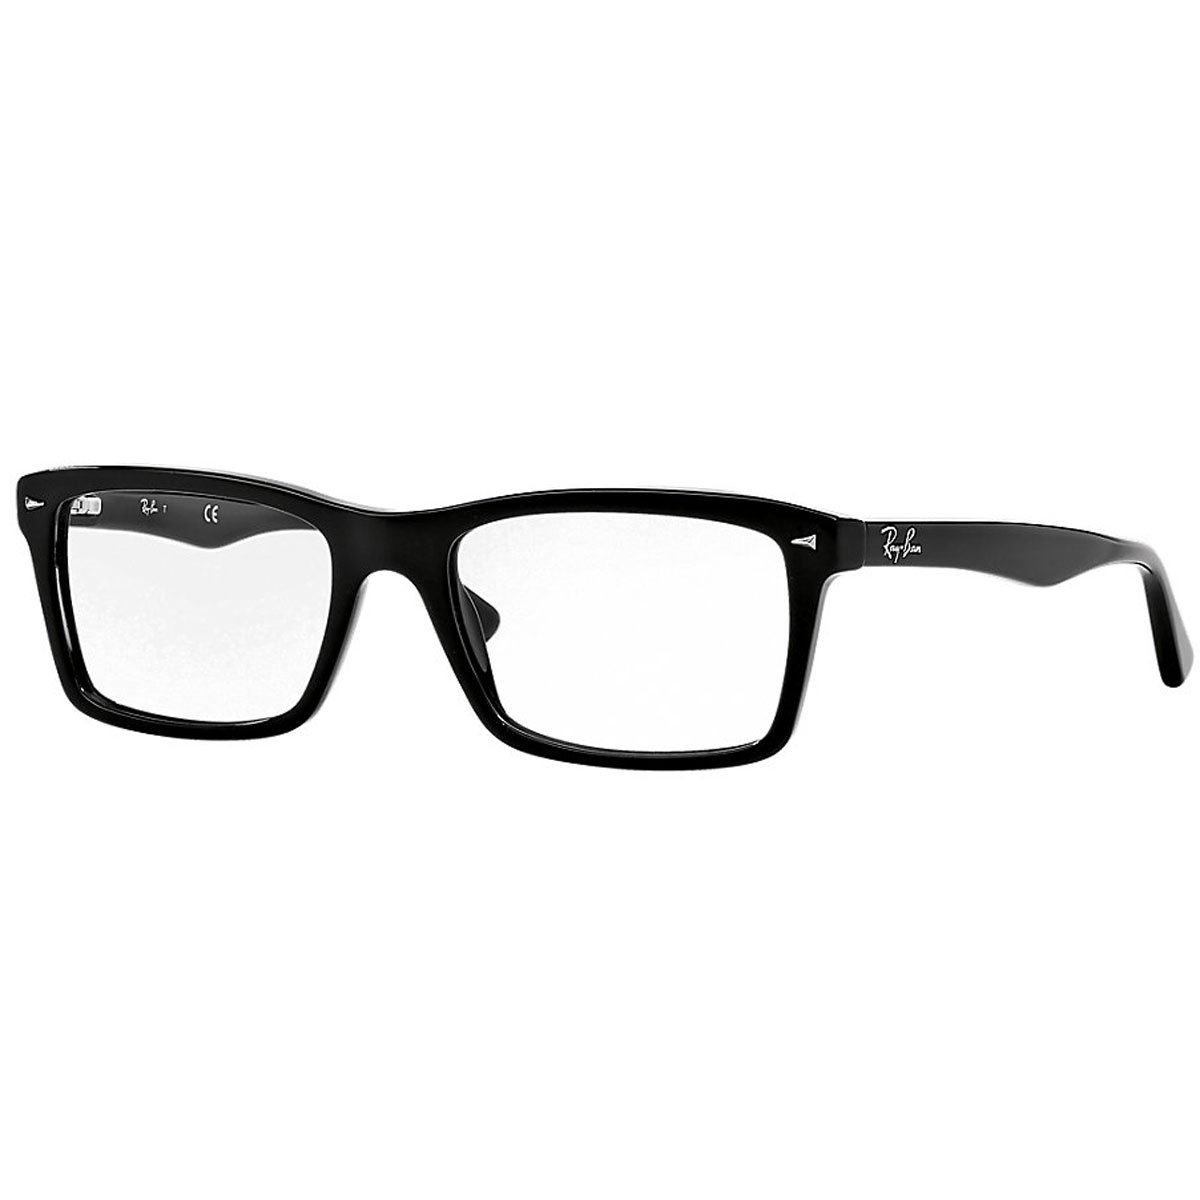 Ray-Ban Glasses 5287 2000 Black 5287 Rectangle Sunglasses